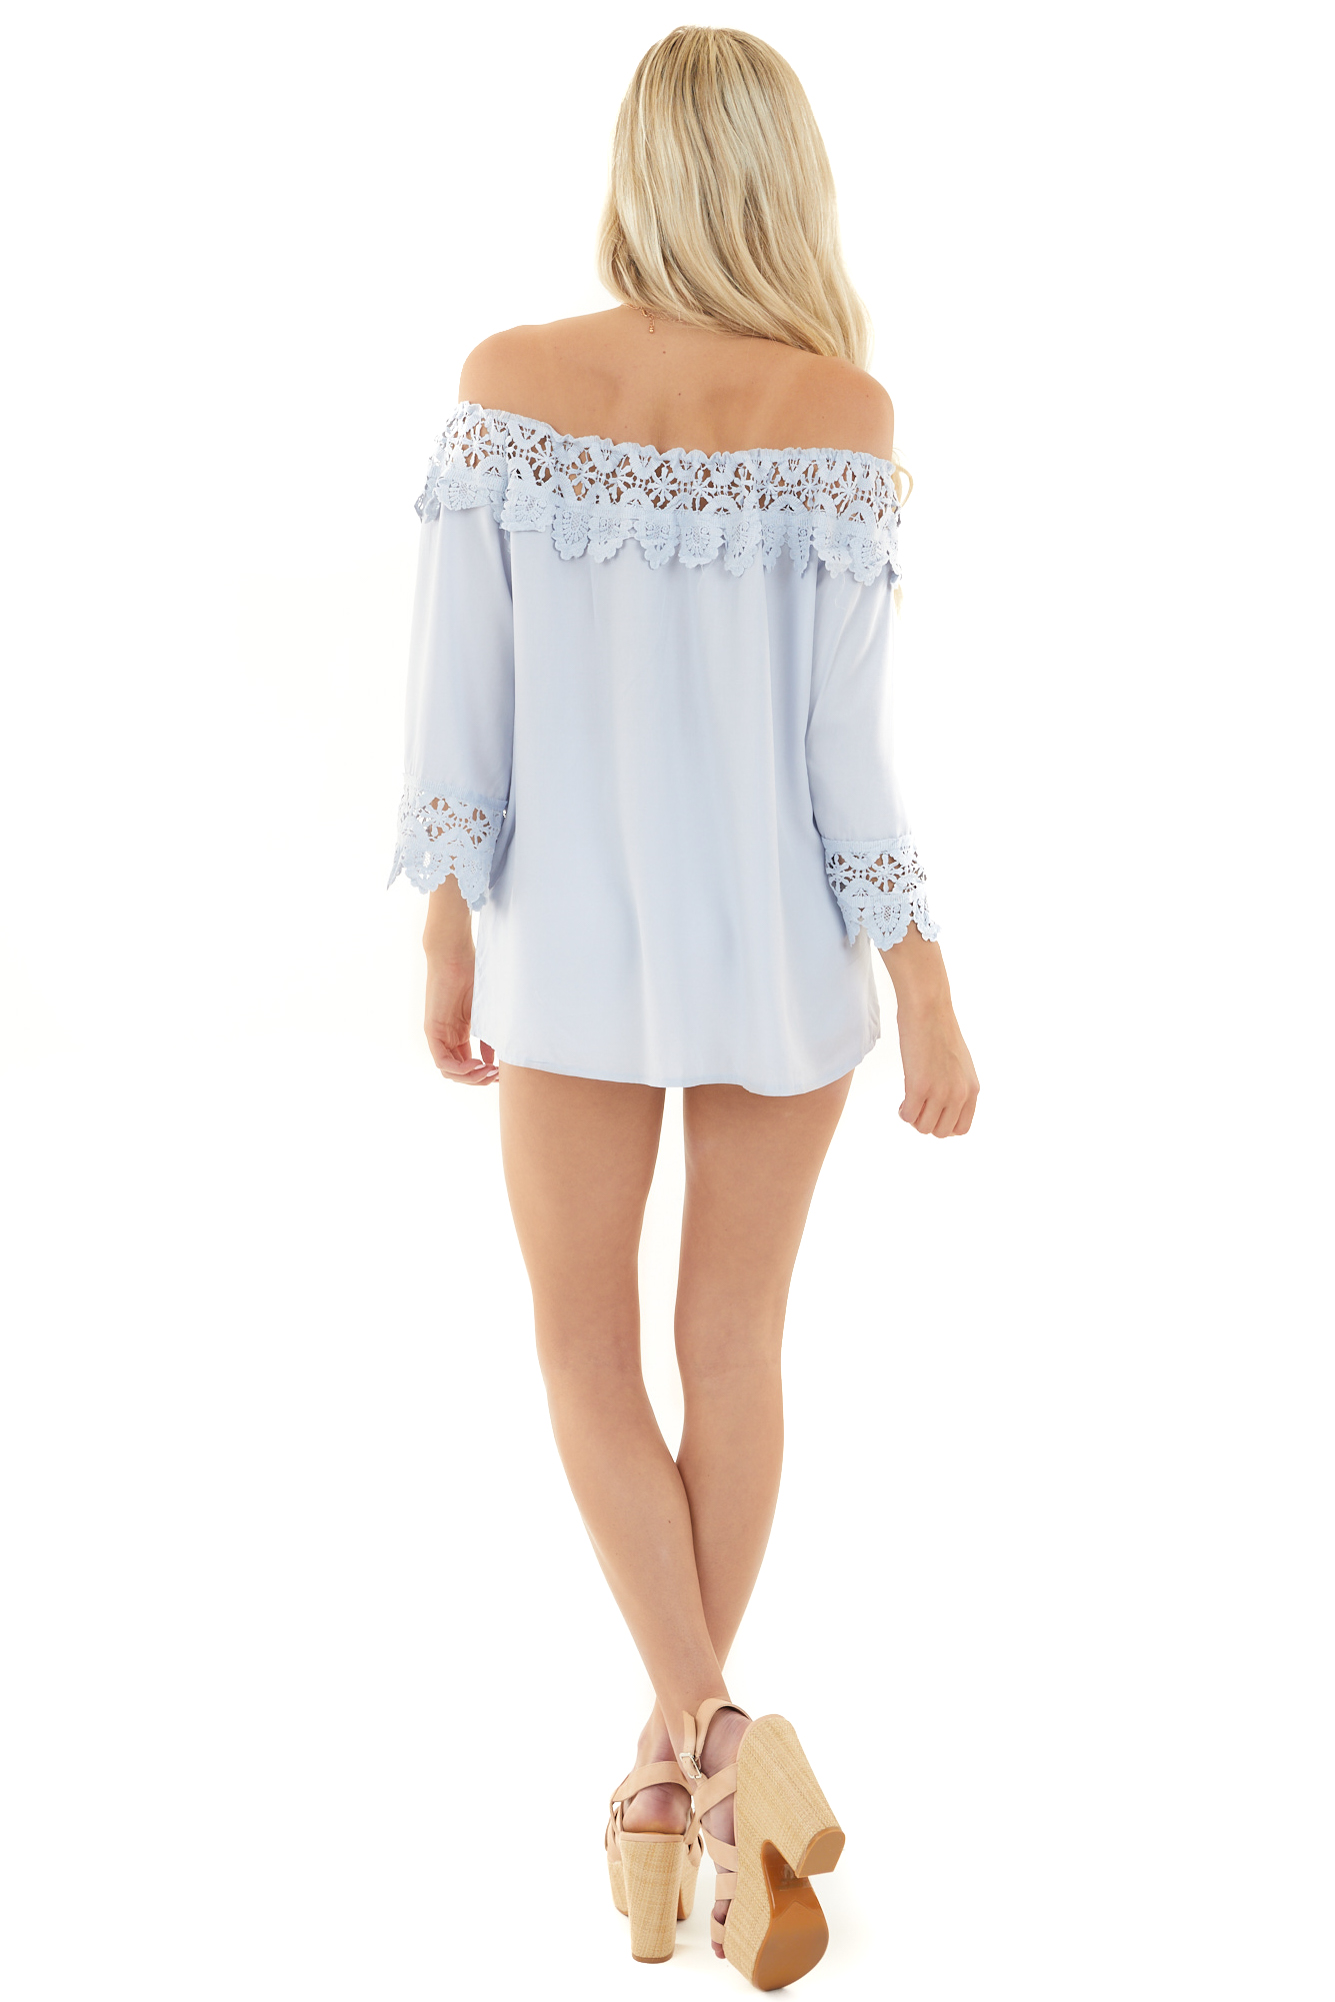 Pale Blue Off the Shoulder Blouse with Lace Trim Details